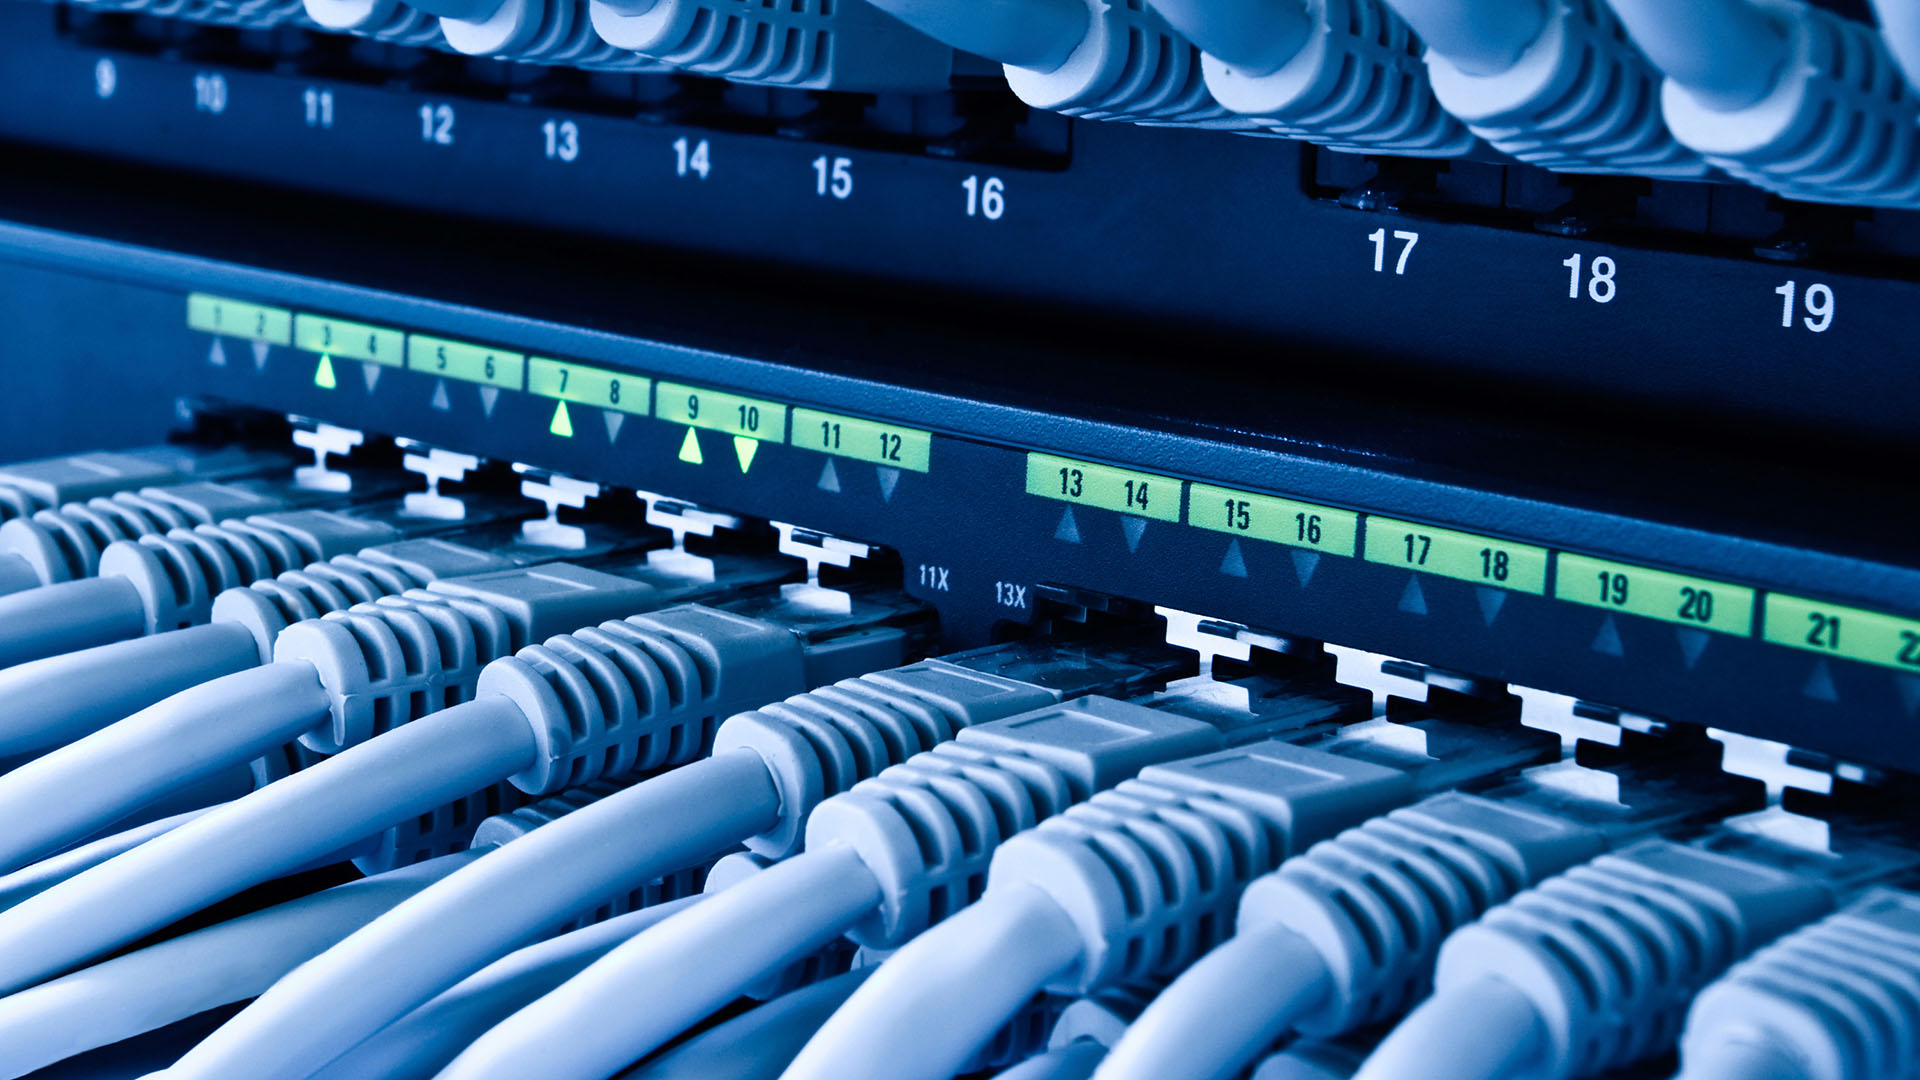 Talladegas Trusted Voice & Data Network Cabling Services Provider